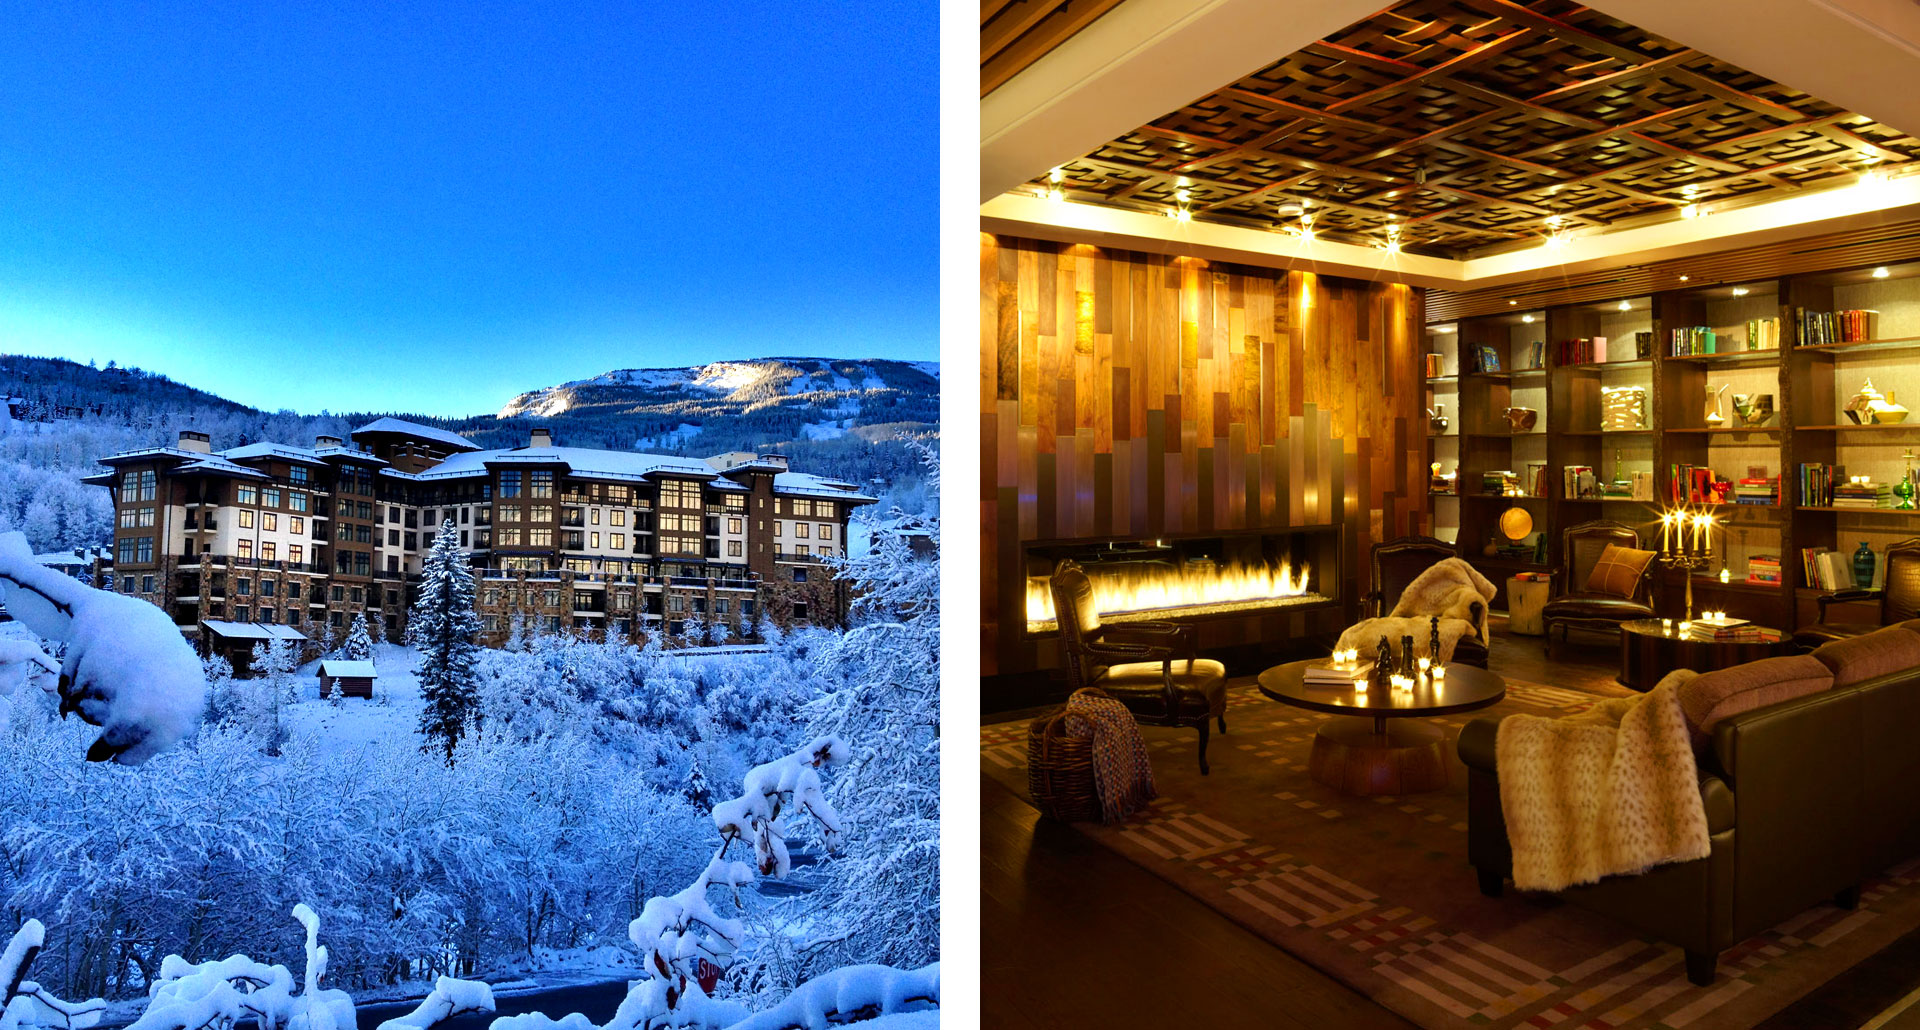 VICEROY SNOWMASS - boutique hotel in Snowmass Village